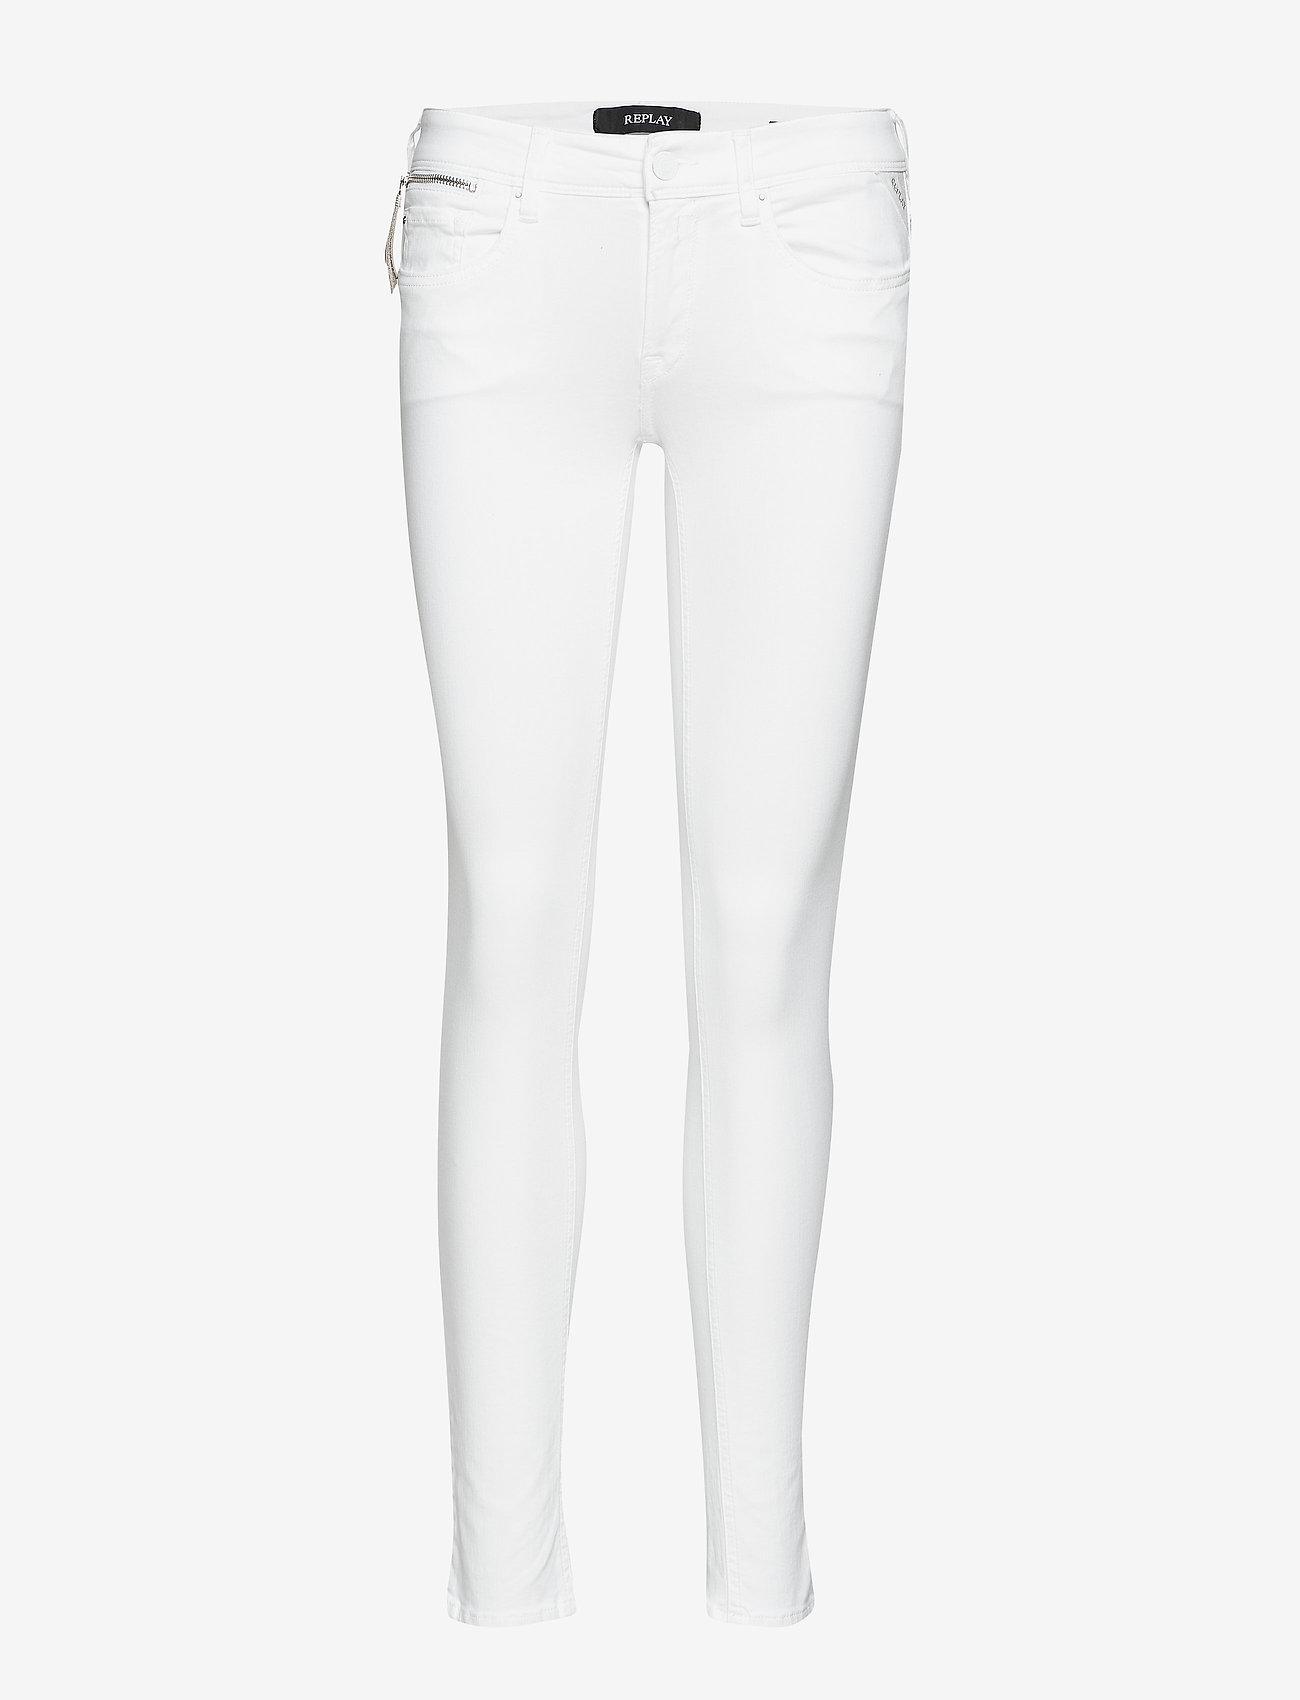 Replay - LUZ COIN ZIP - skinny jeans - white